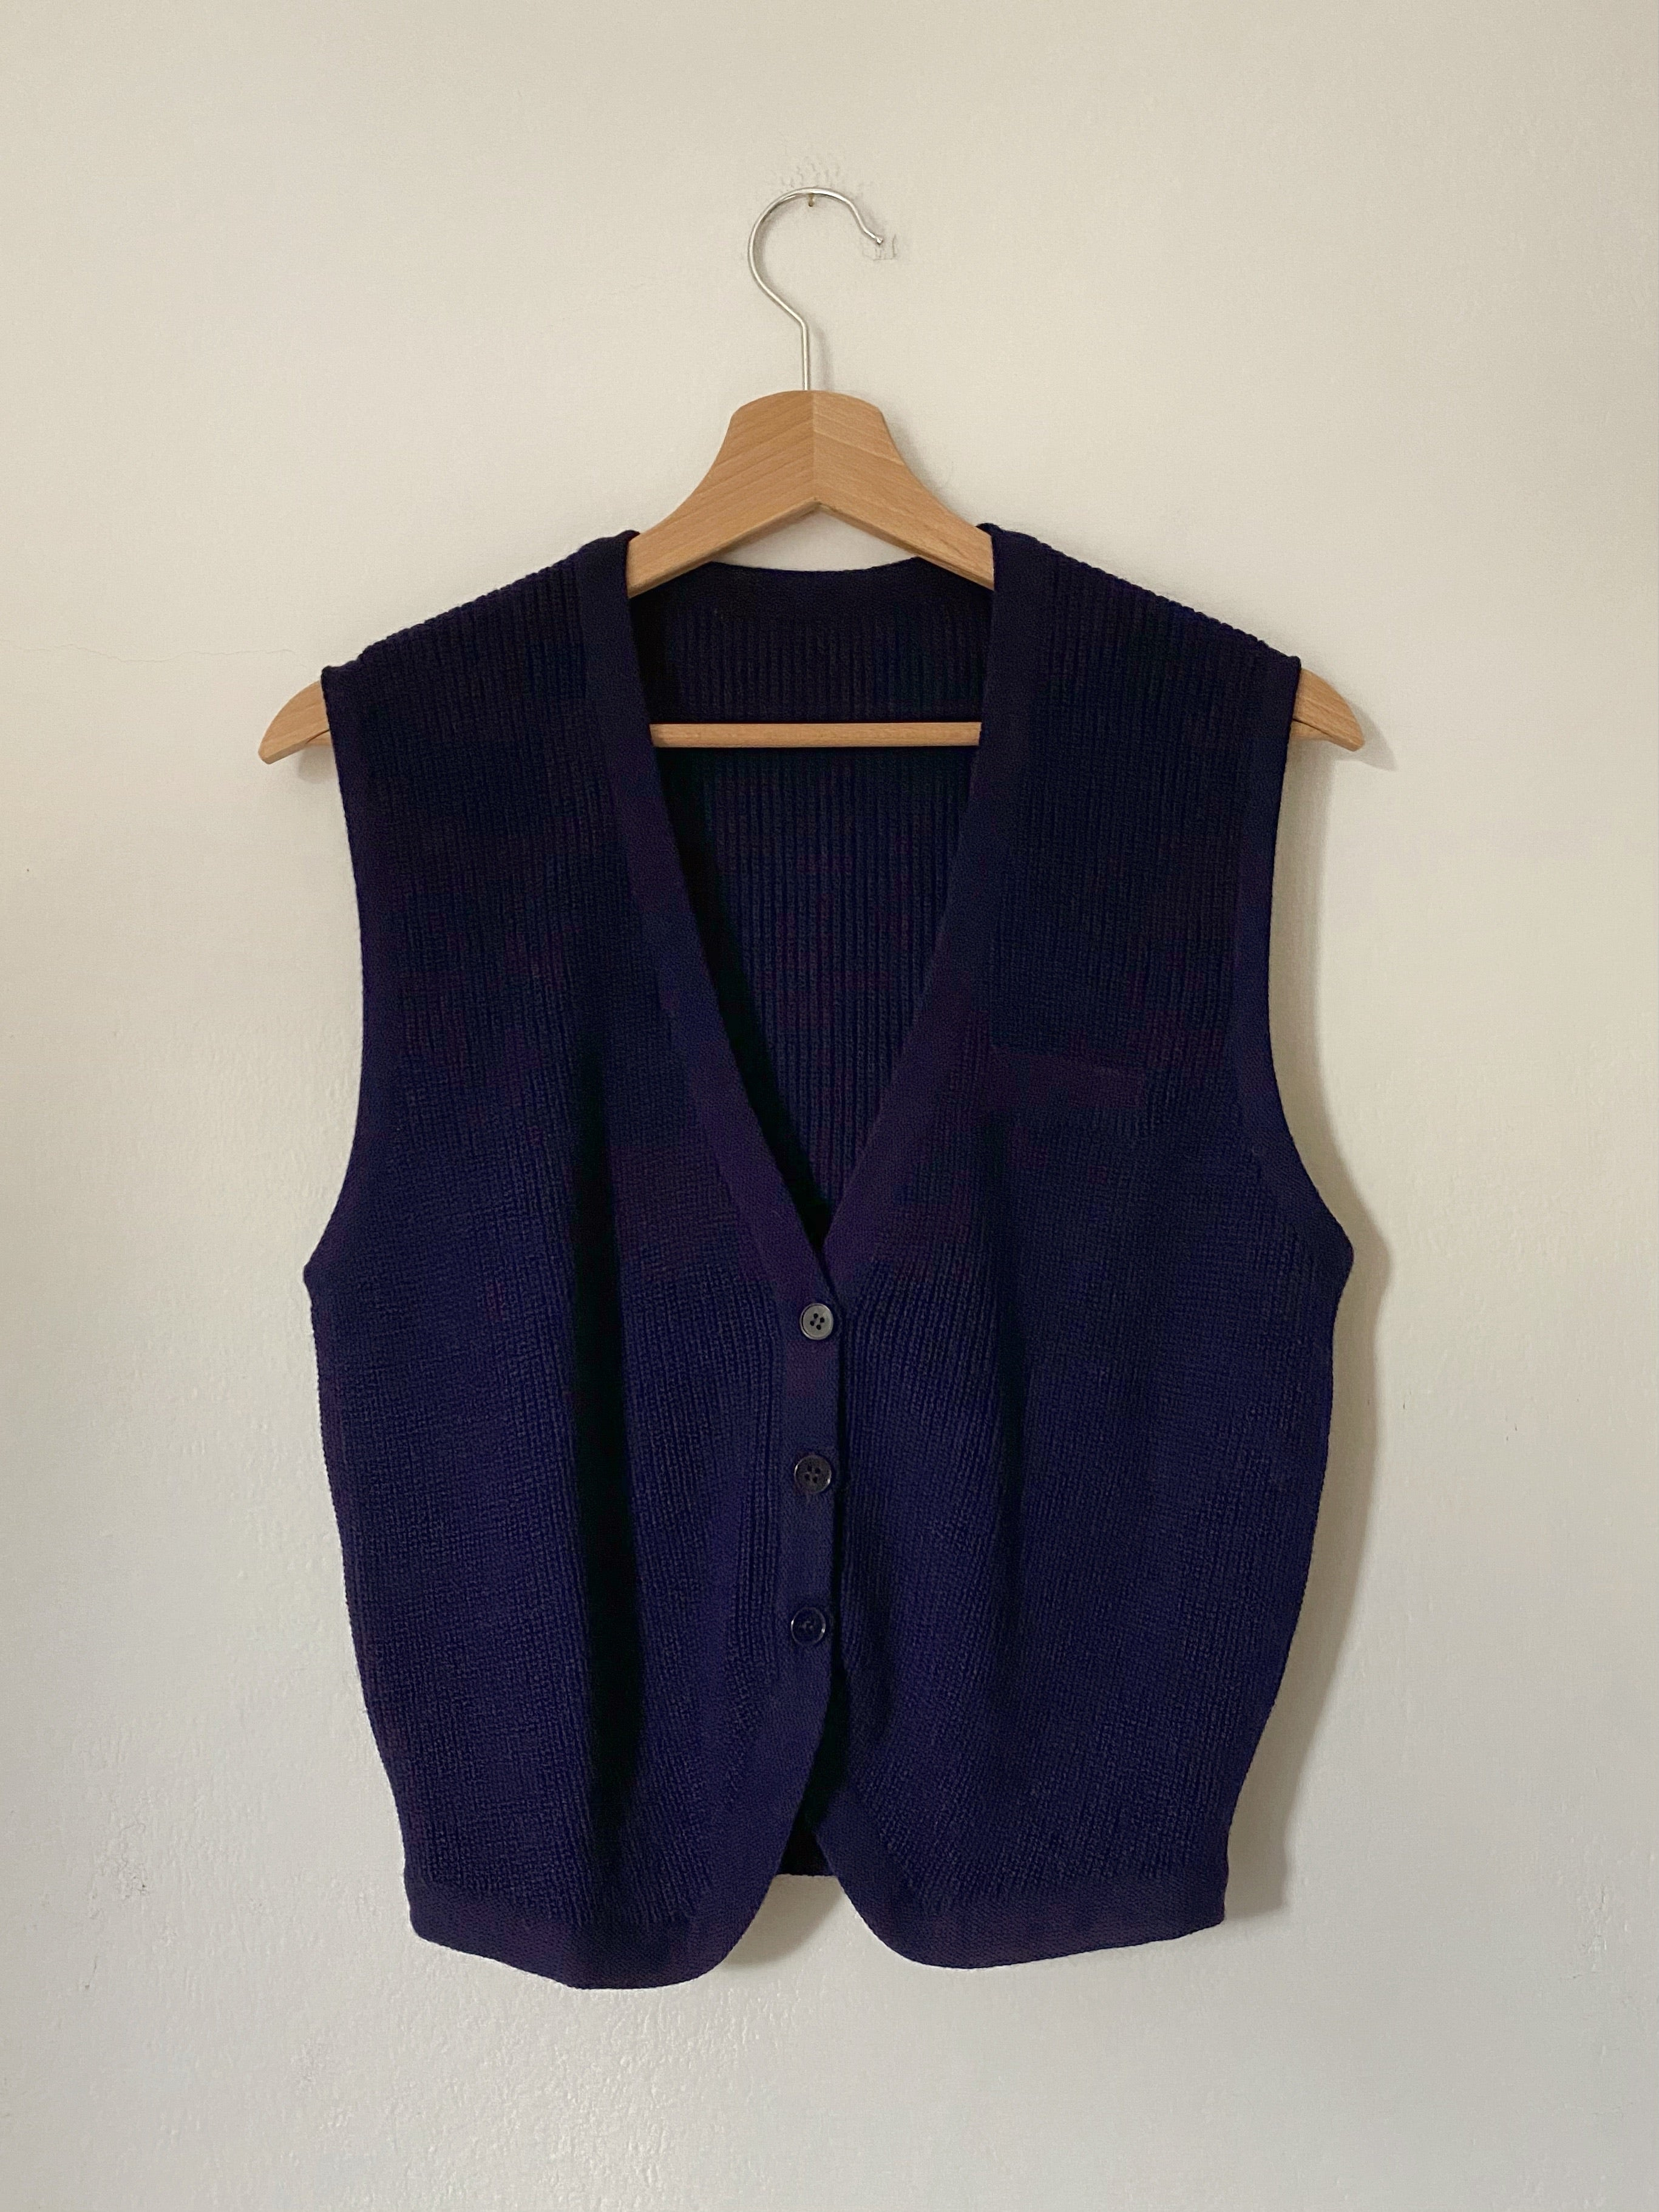 Vintage Italian wool blend buttoned blue vest